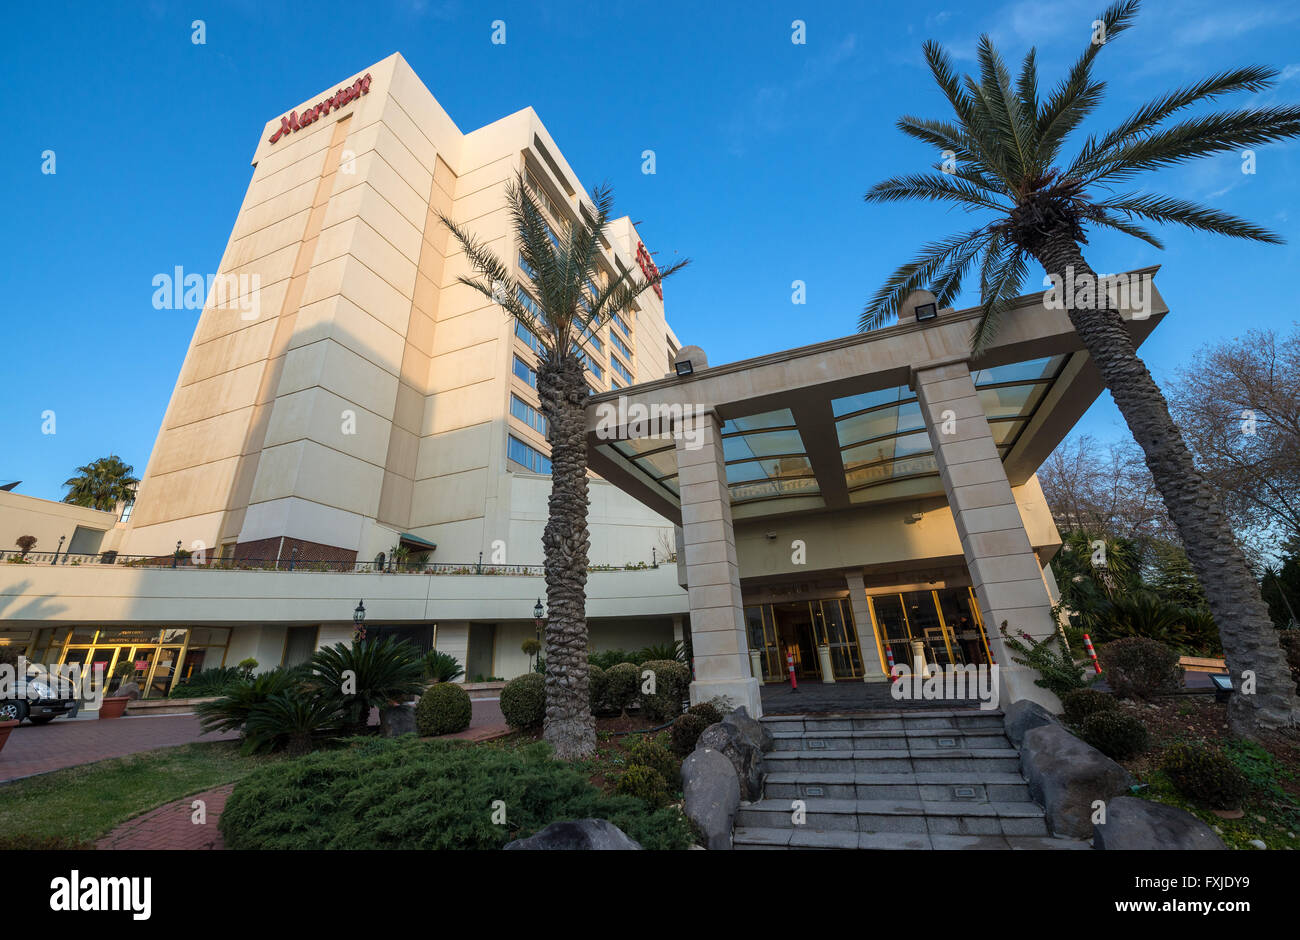 Amman Marriott Hotel In Amman City Capital Of Jordan